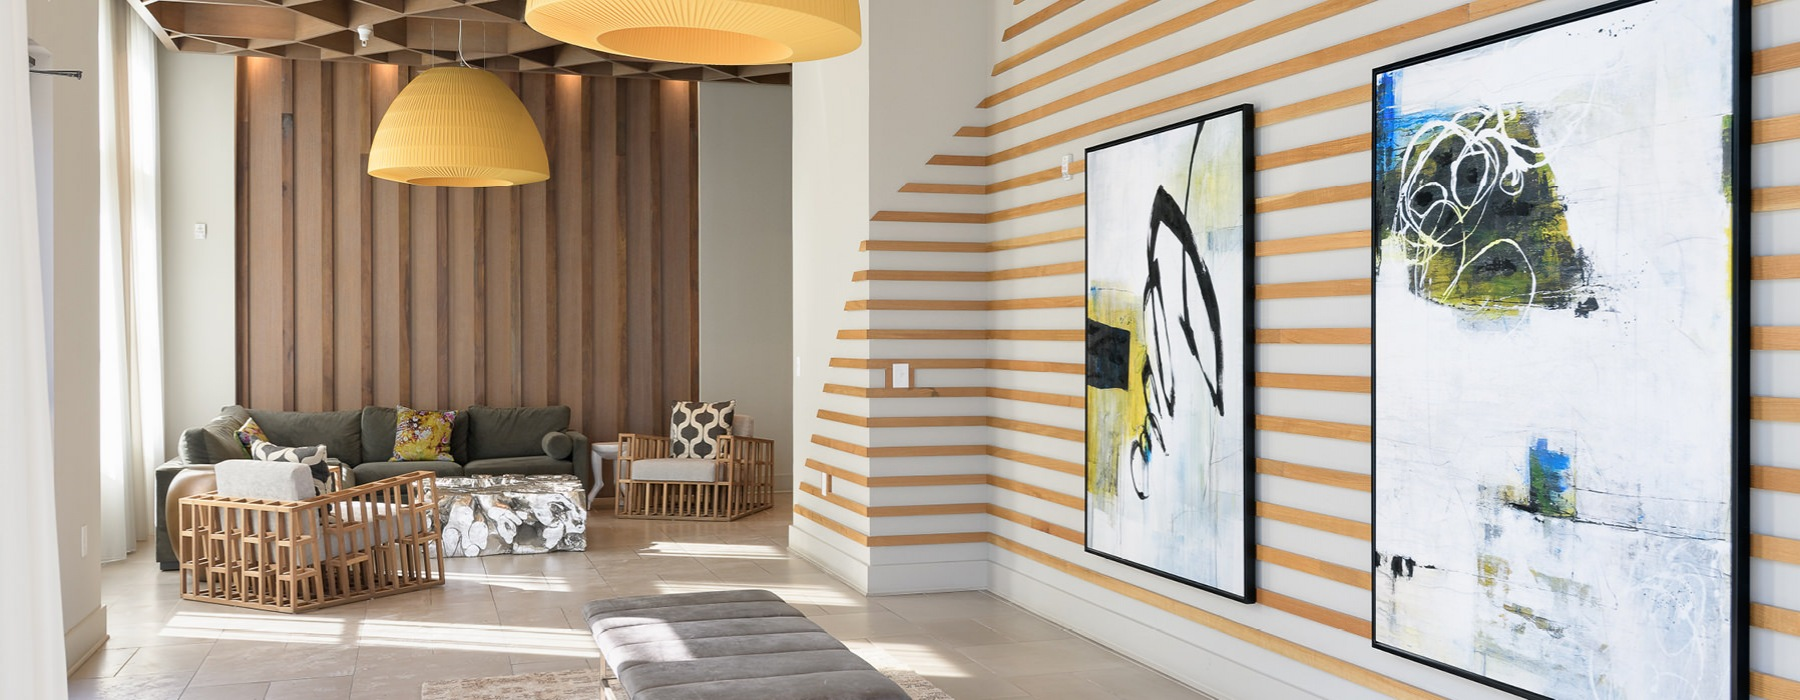 Lobby with couch and large hanging art